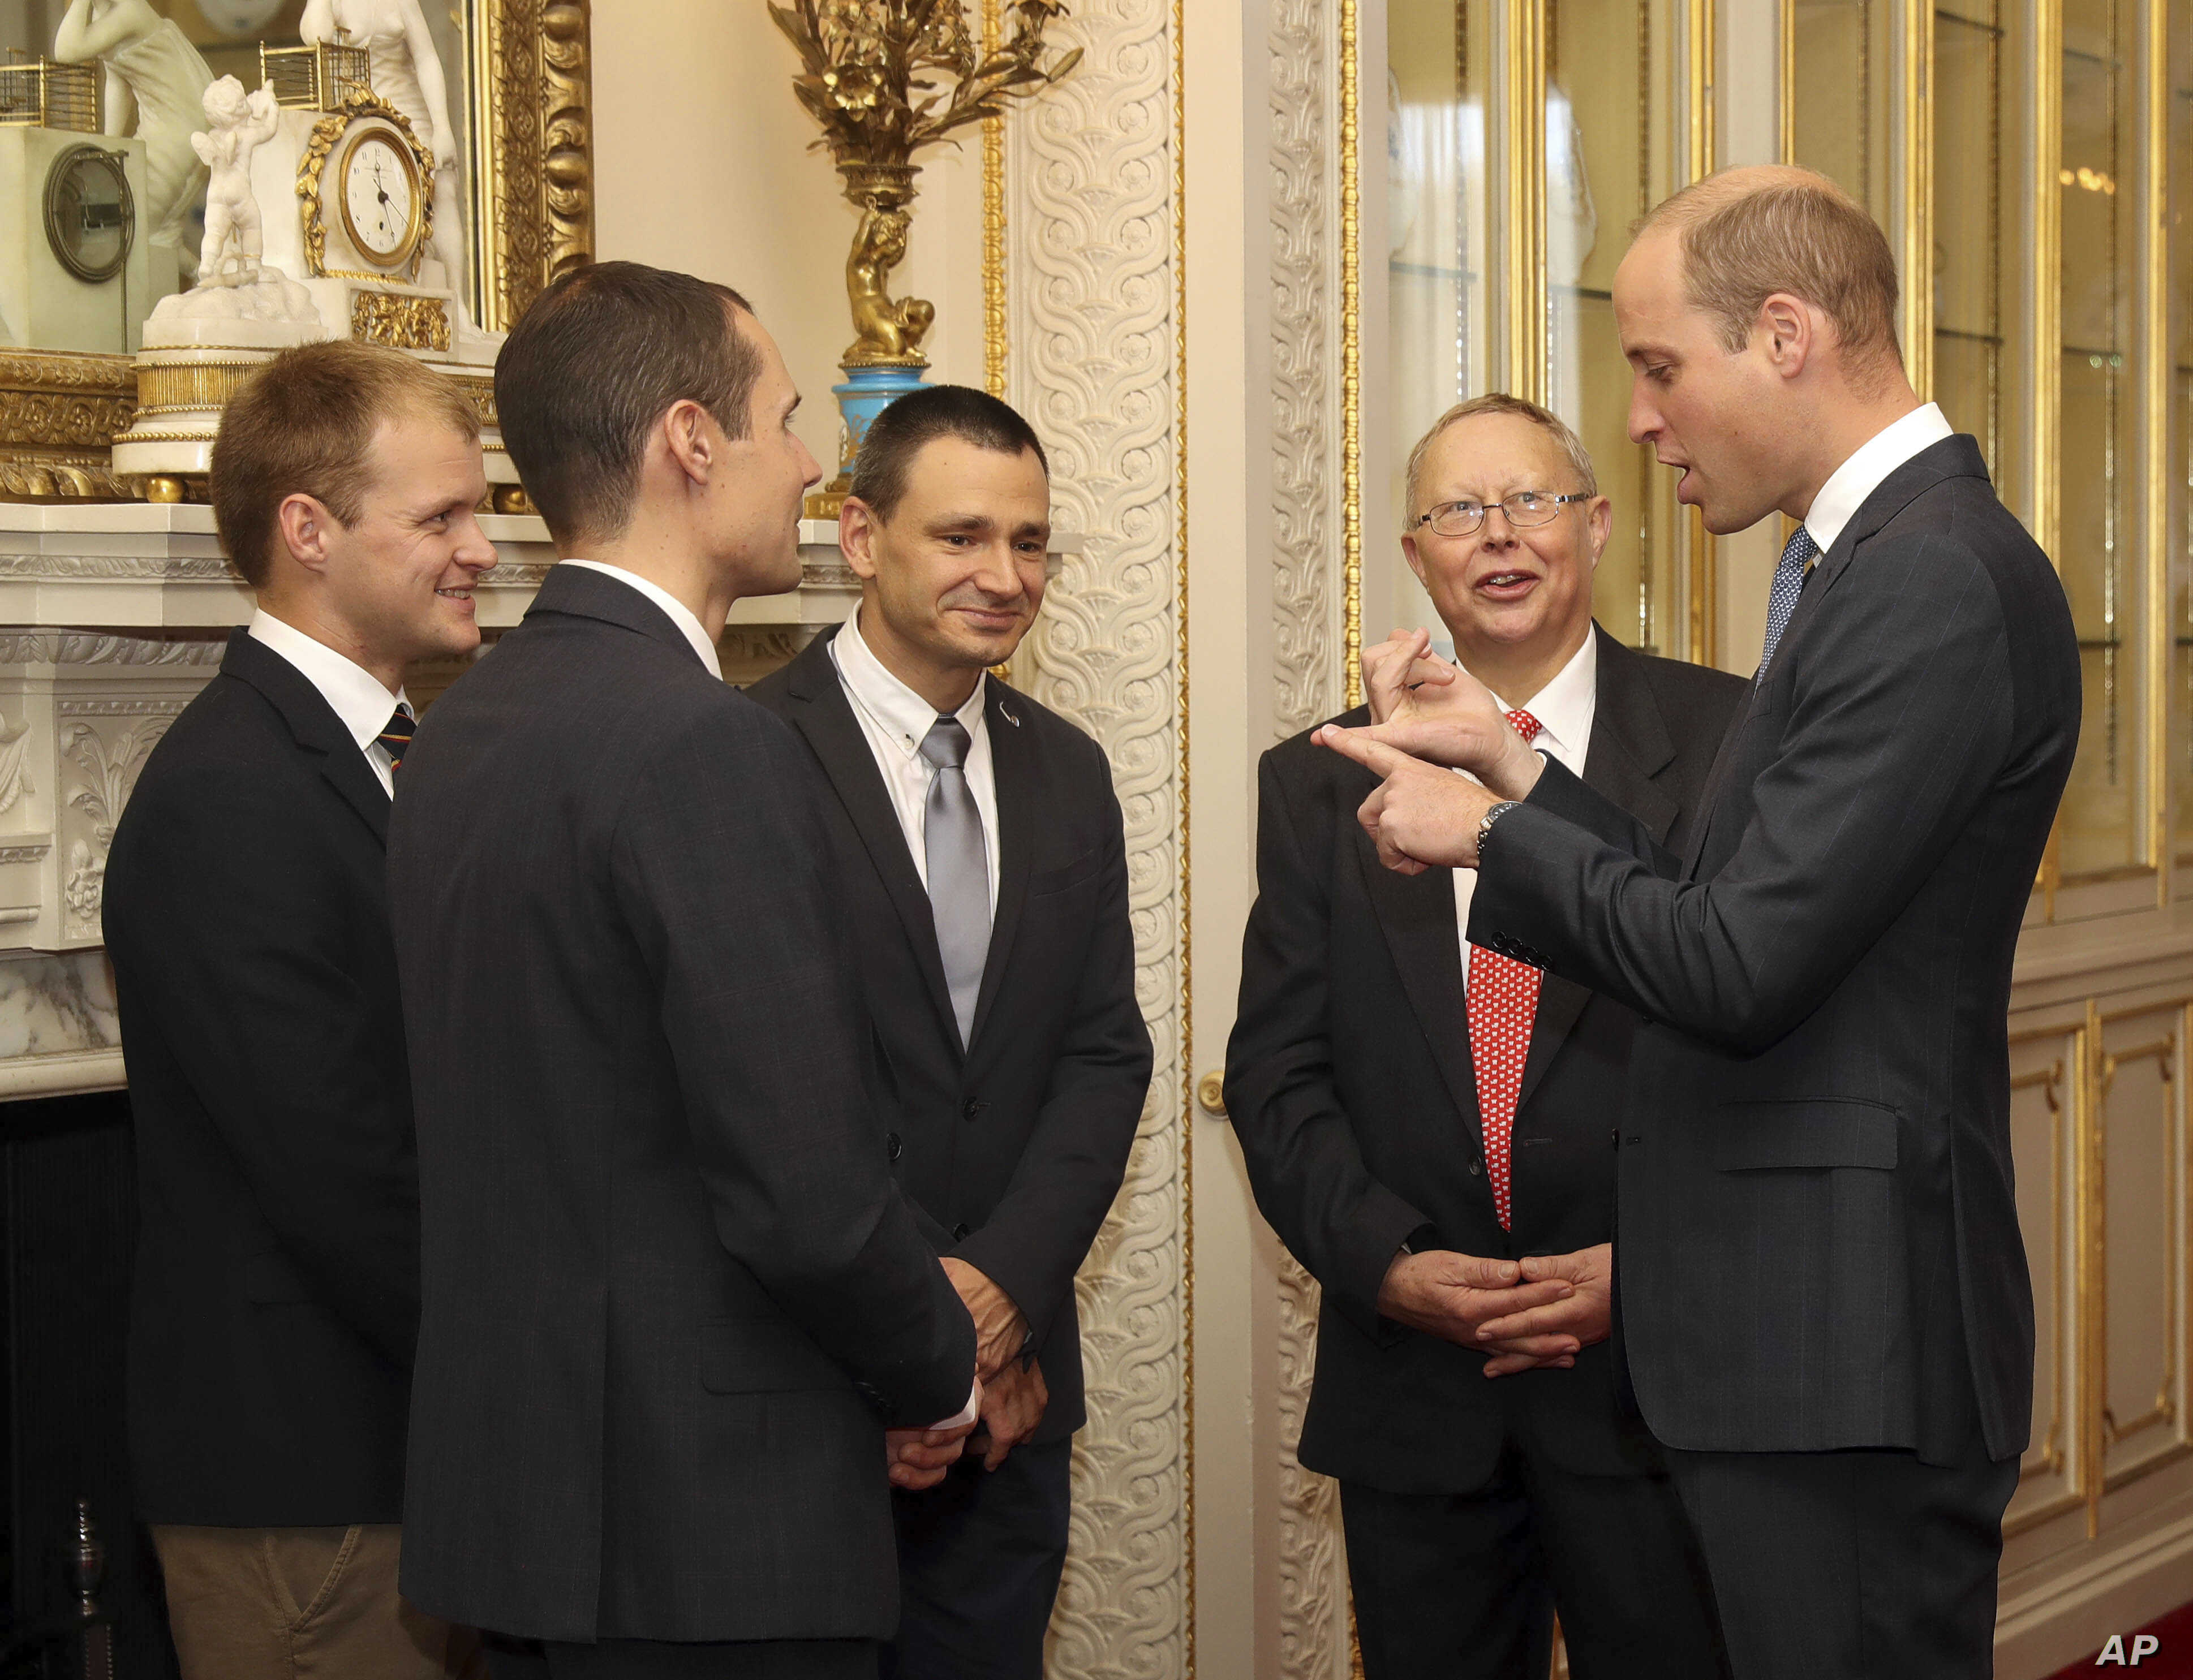 On Oct. 16, 2018, Prince William hosts a reception at Buckingham Palace to recognize the extraordinary contribution made by British rescue divers and support staff in the rescue of 12 boys and their soccerl coach from the Tham Luang Cave in Thailand.